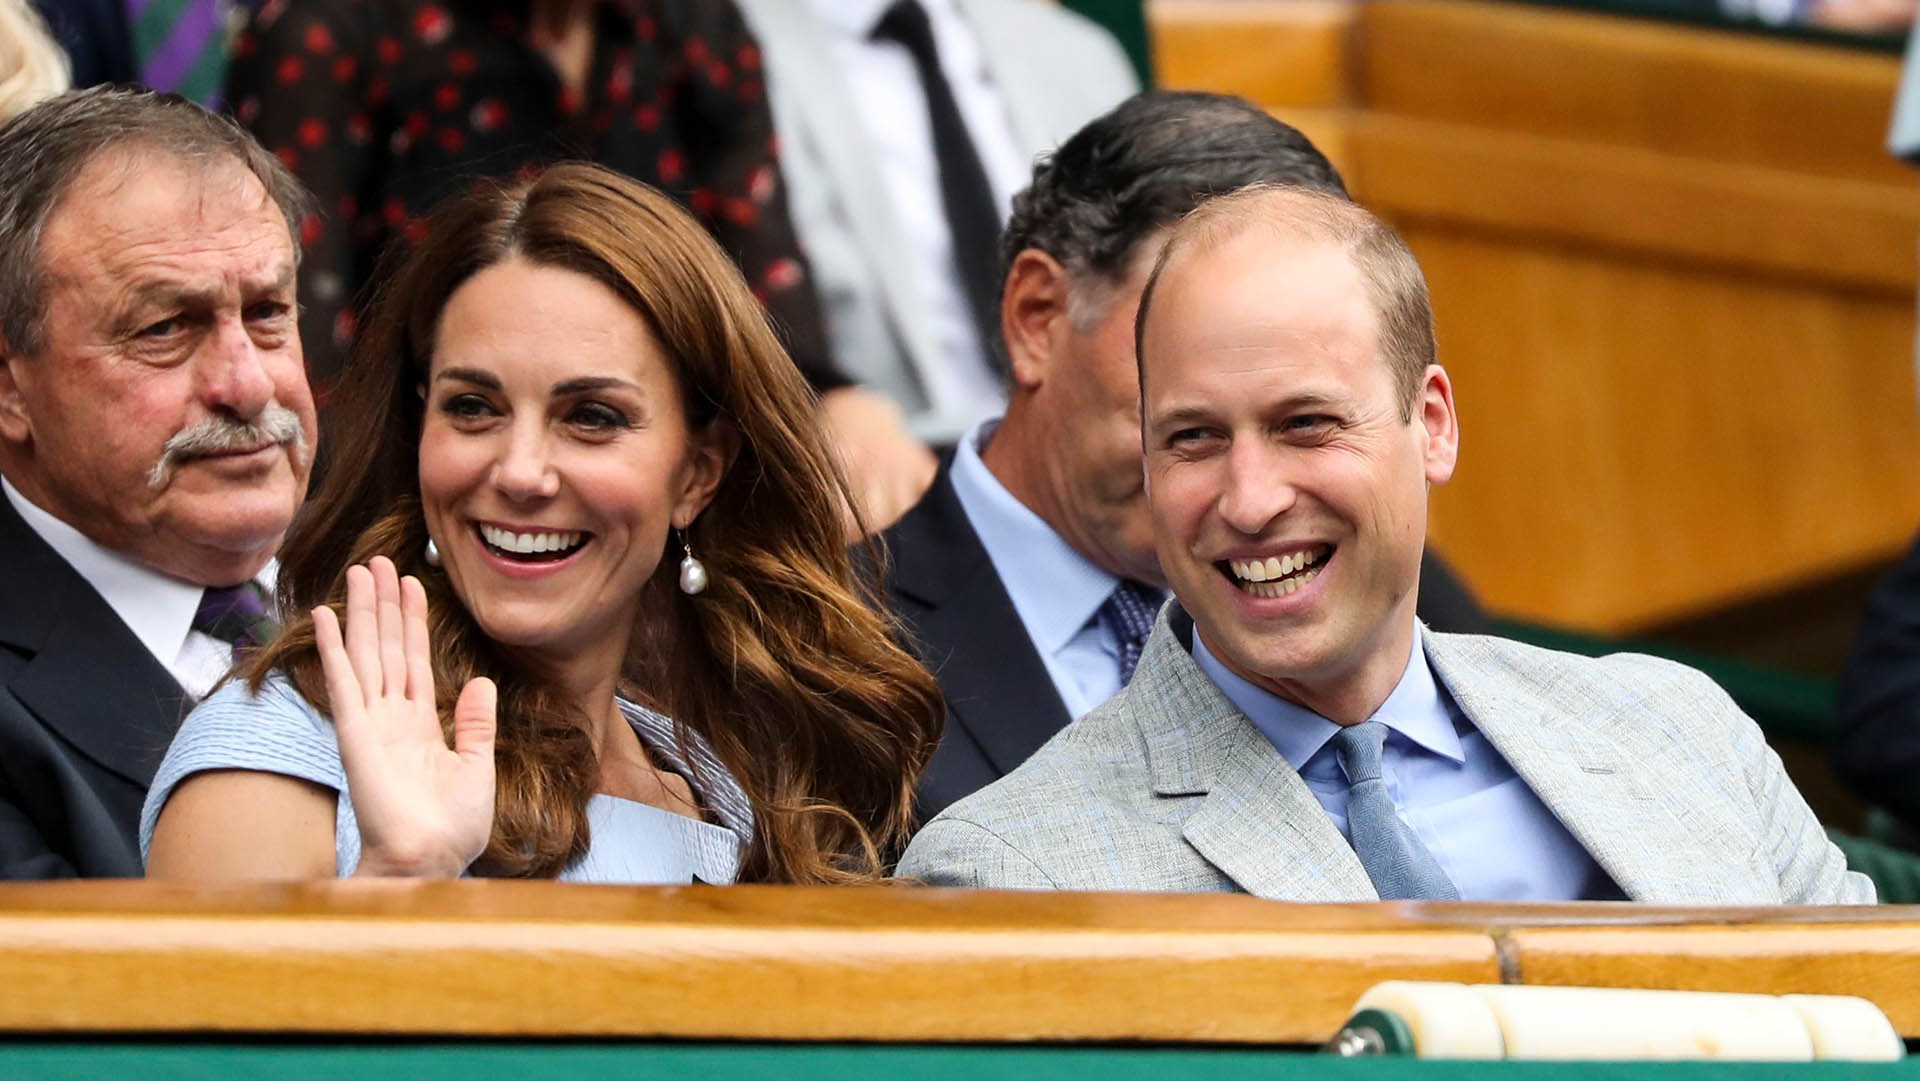 El Príncipe William y Kate, duquesa de Cambridge, estuvieron presentes en la final (Shutterstock)